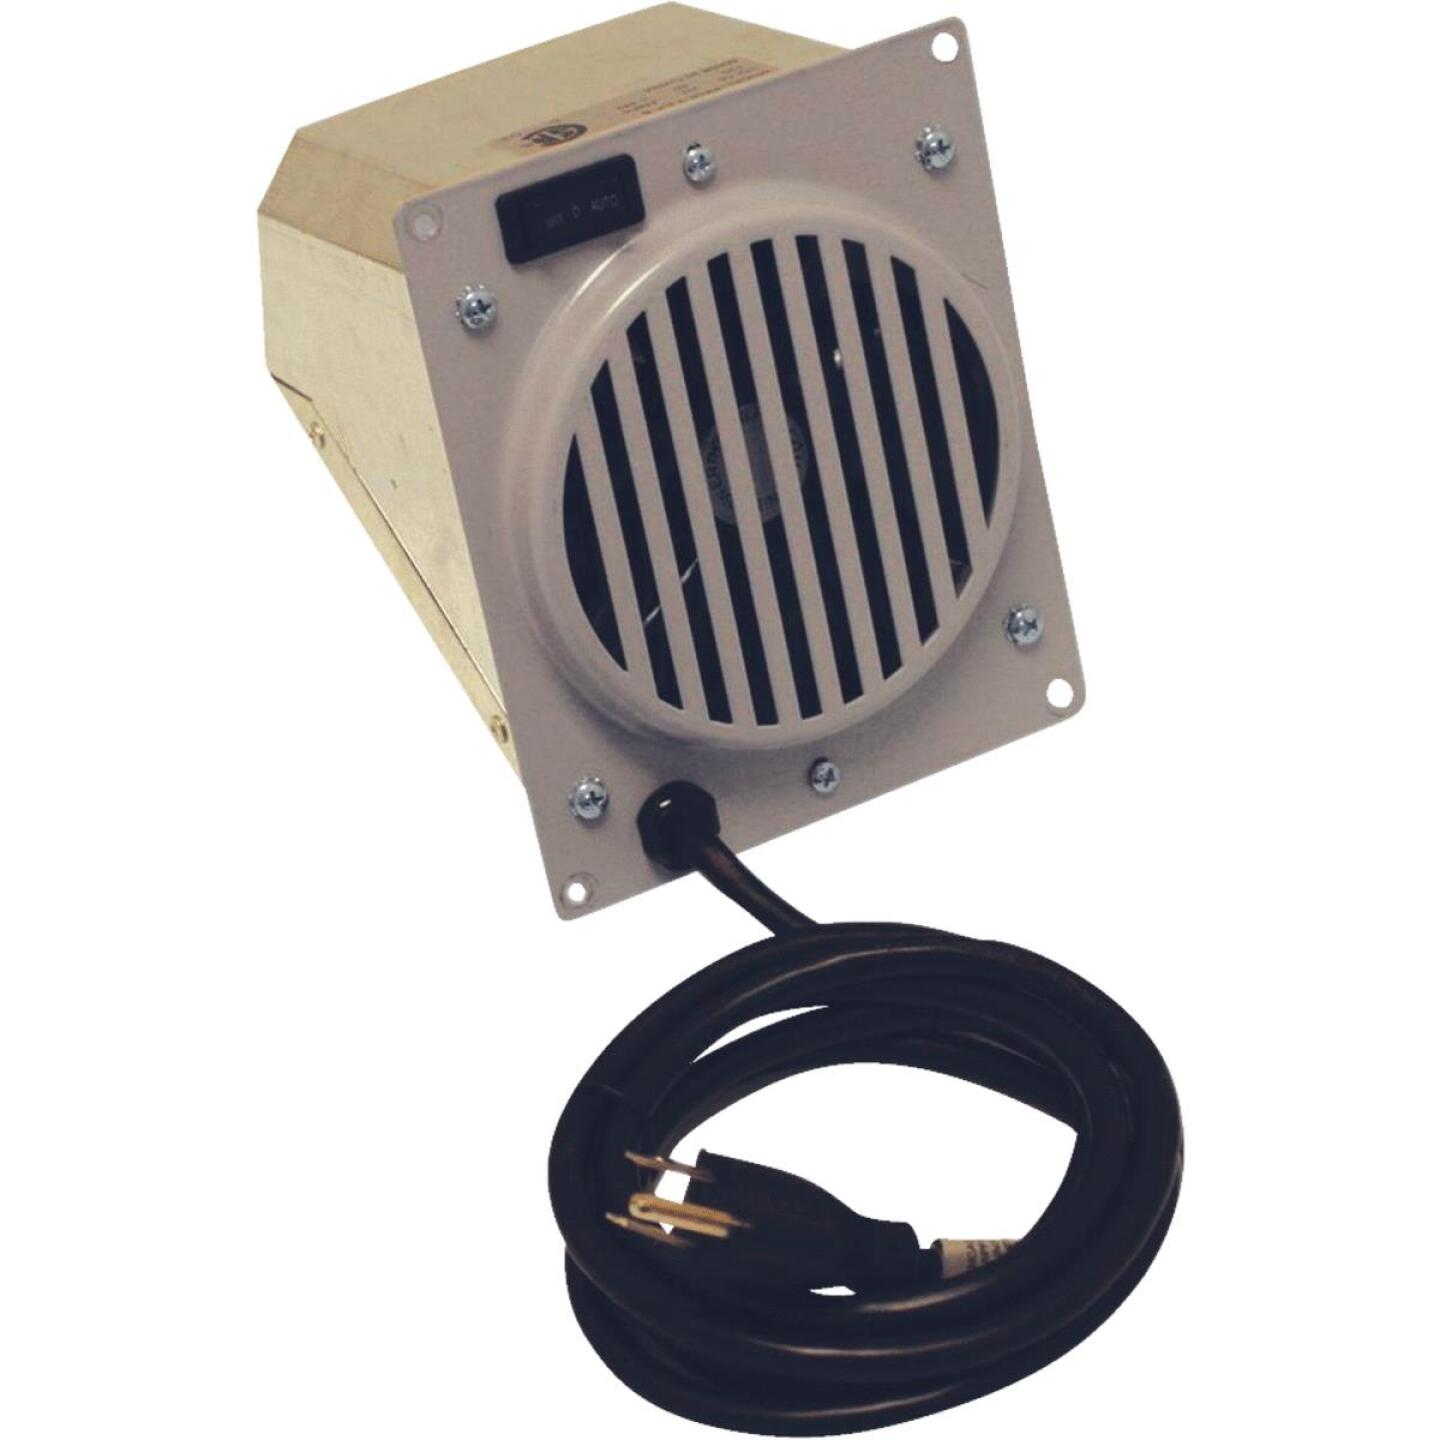 ProCom Thermostat Controlled MG Series Wall Heater Blower Image 1